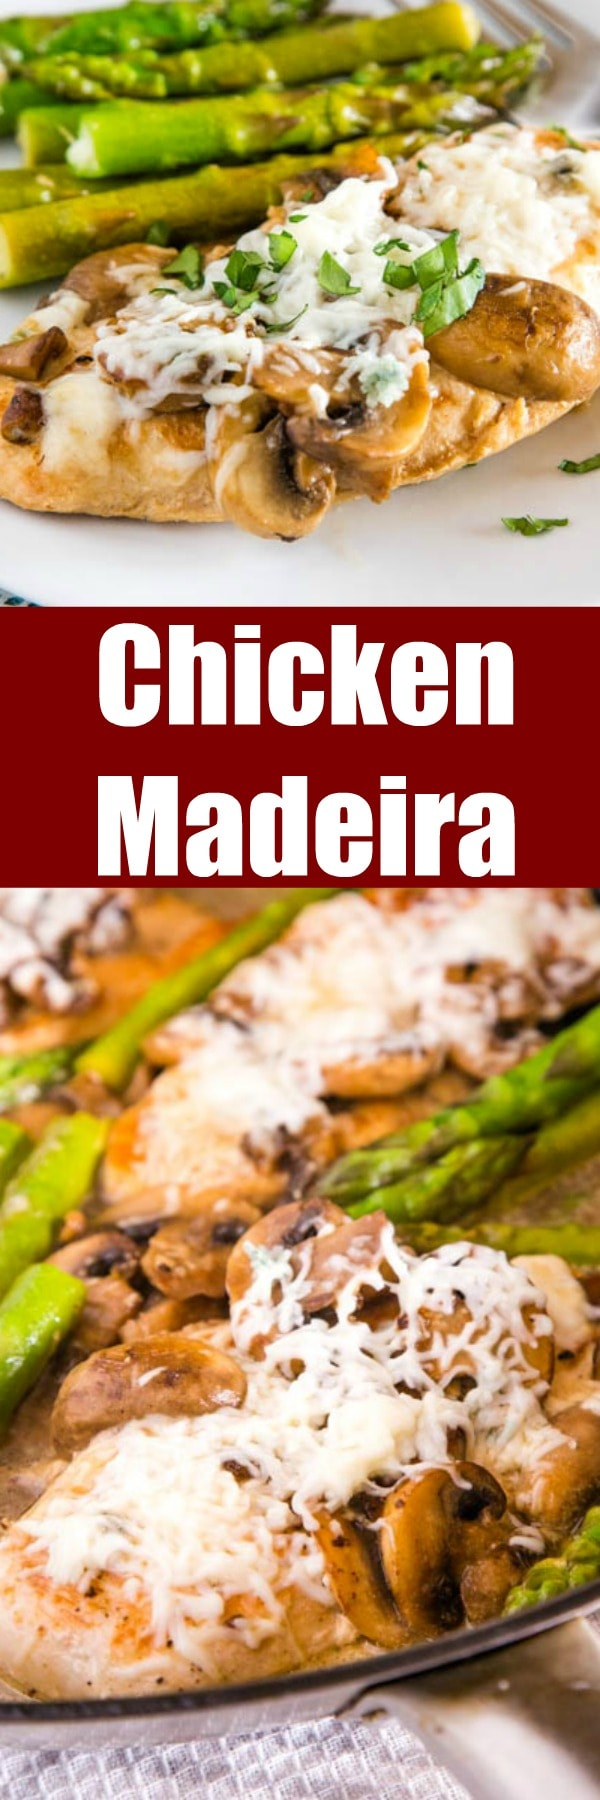 Chicken Madeira Recipe - This copycat is even better than the restaurant version! Tender chicken, mushrooms, and asparagus in a Madeira wine sauce and topped with melted cheese! Up your chicken dinner recipe game tonight!